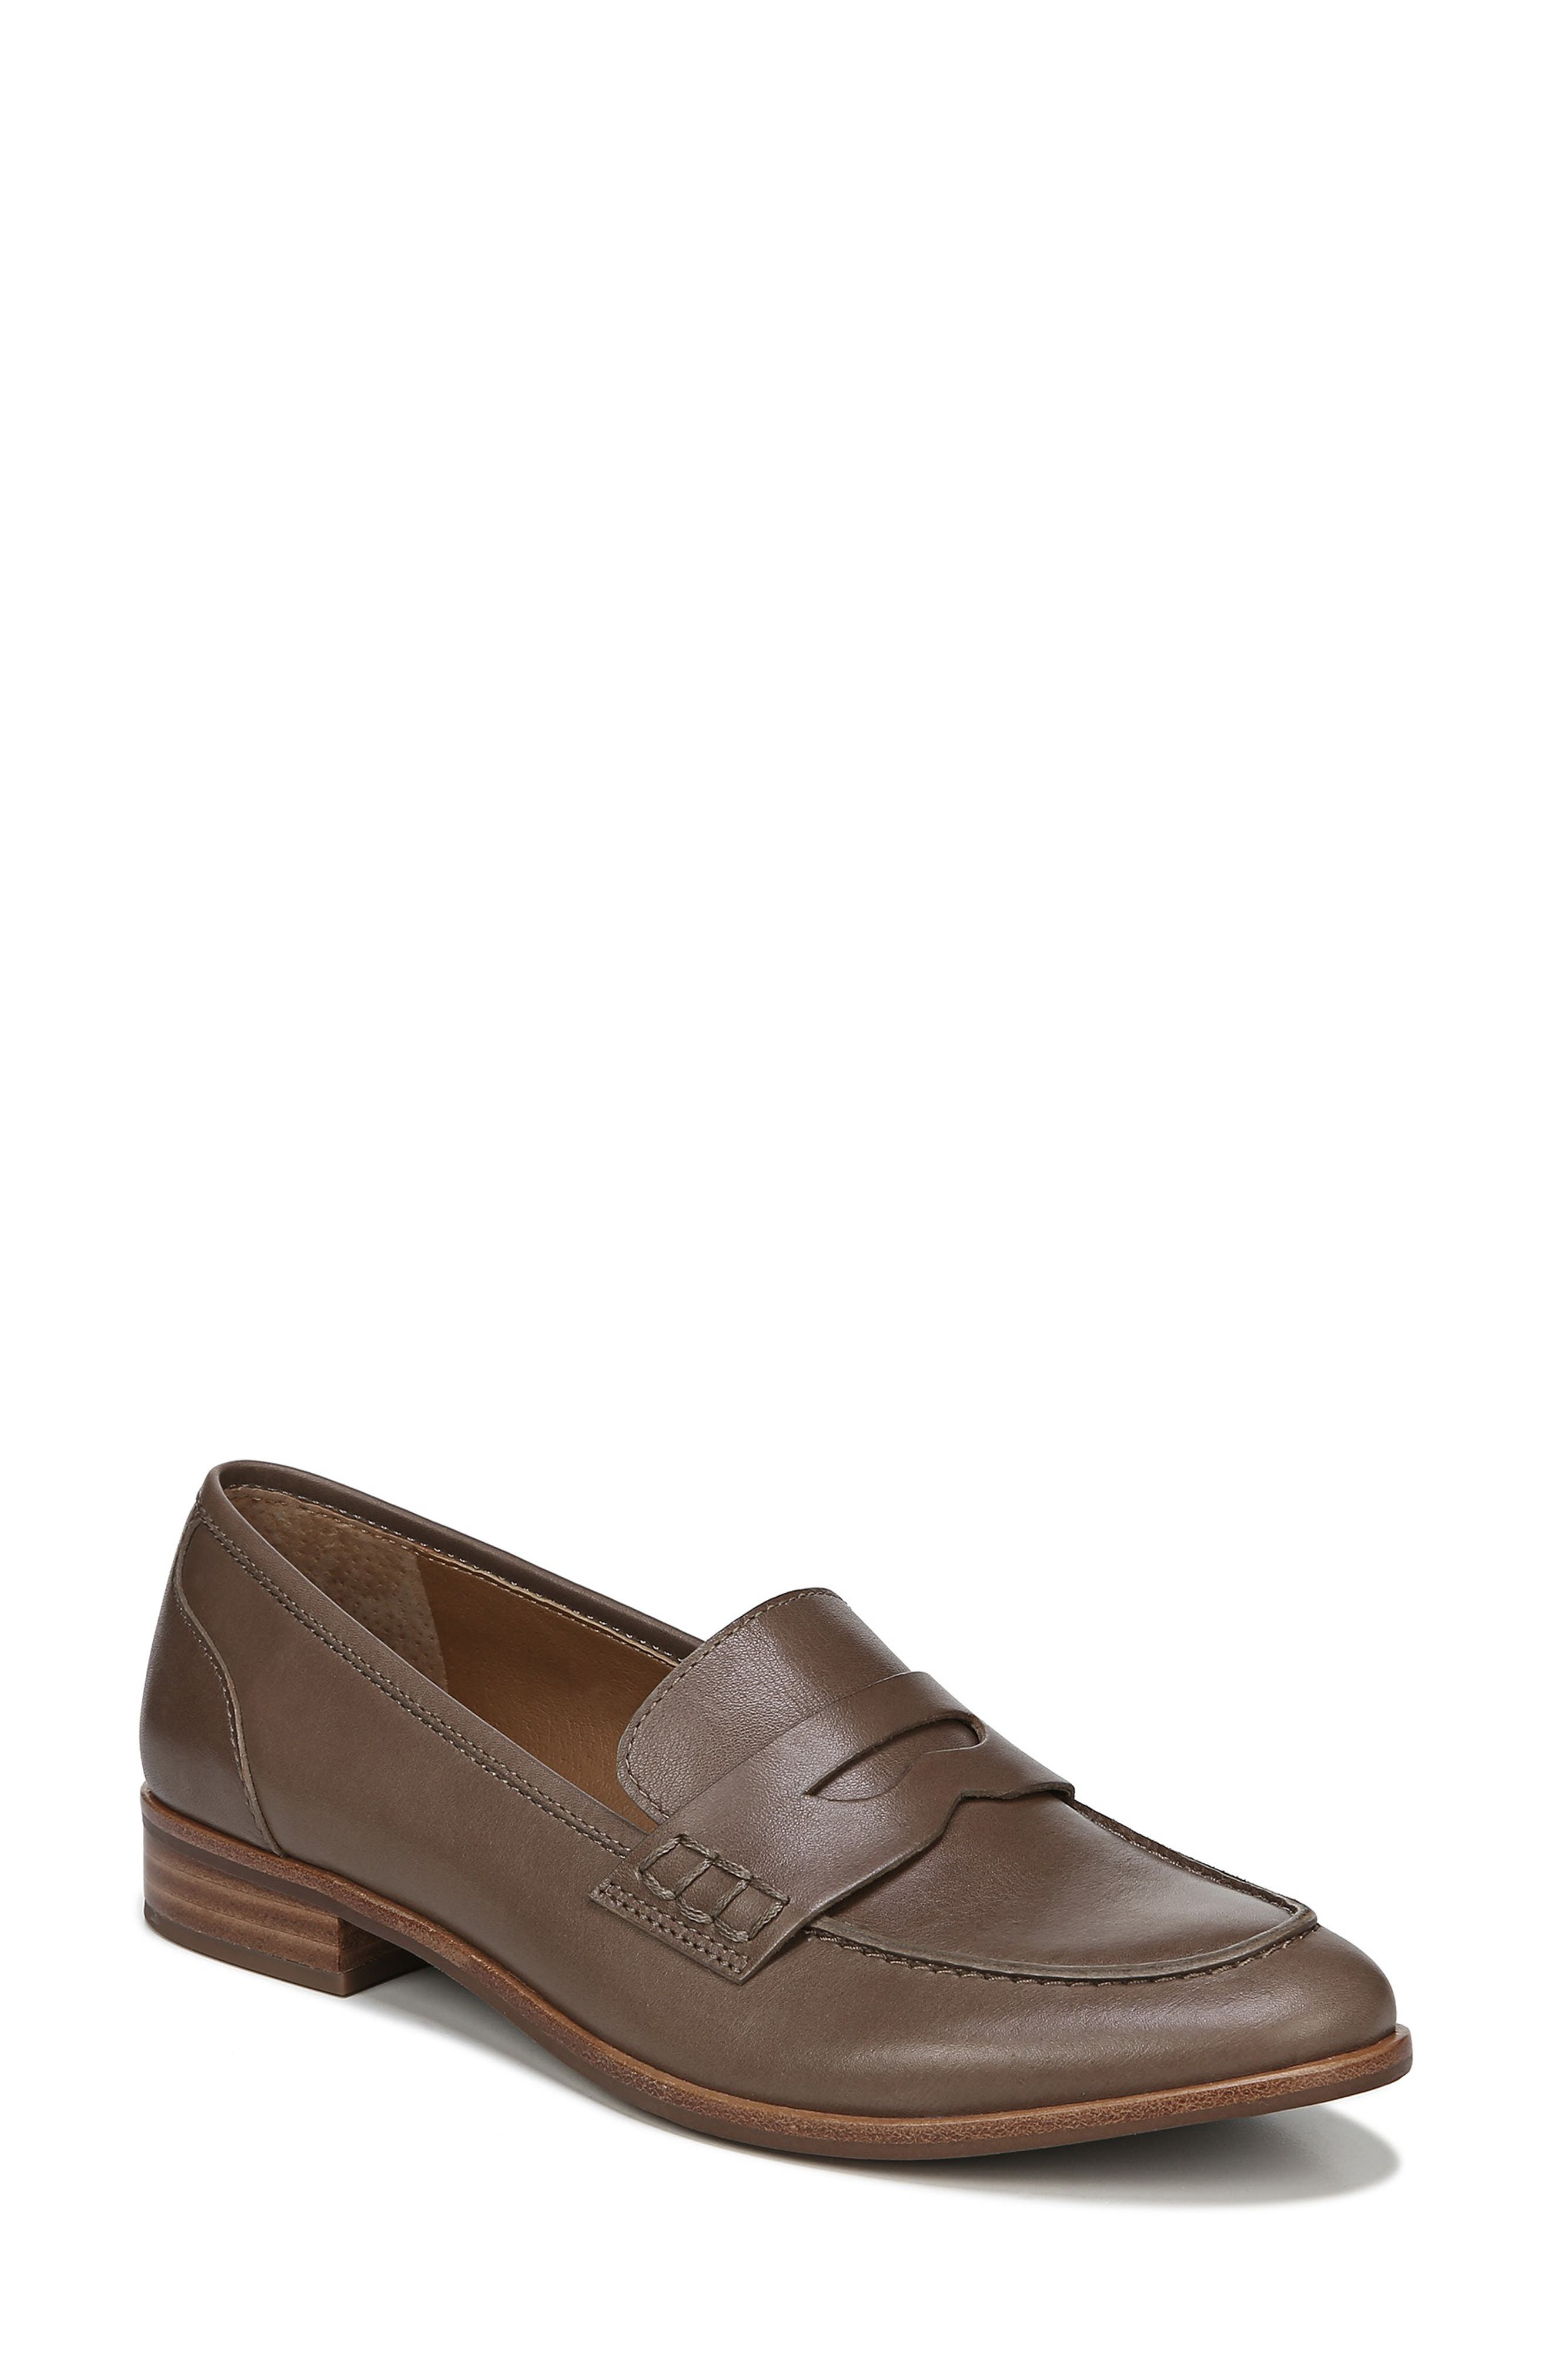 SARTO BY FRANCO SARTO 'Jolette' Penny Loafer, Main, color, DARK PUTTY LEATHER